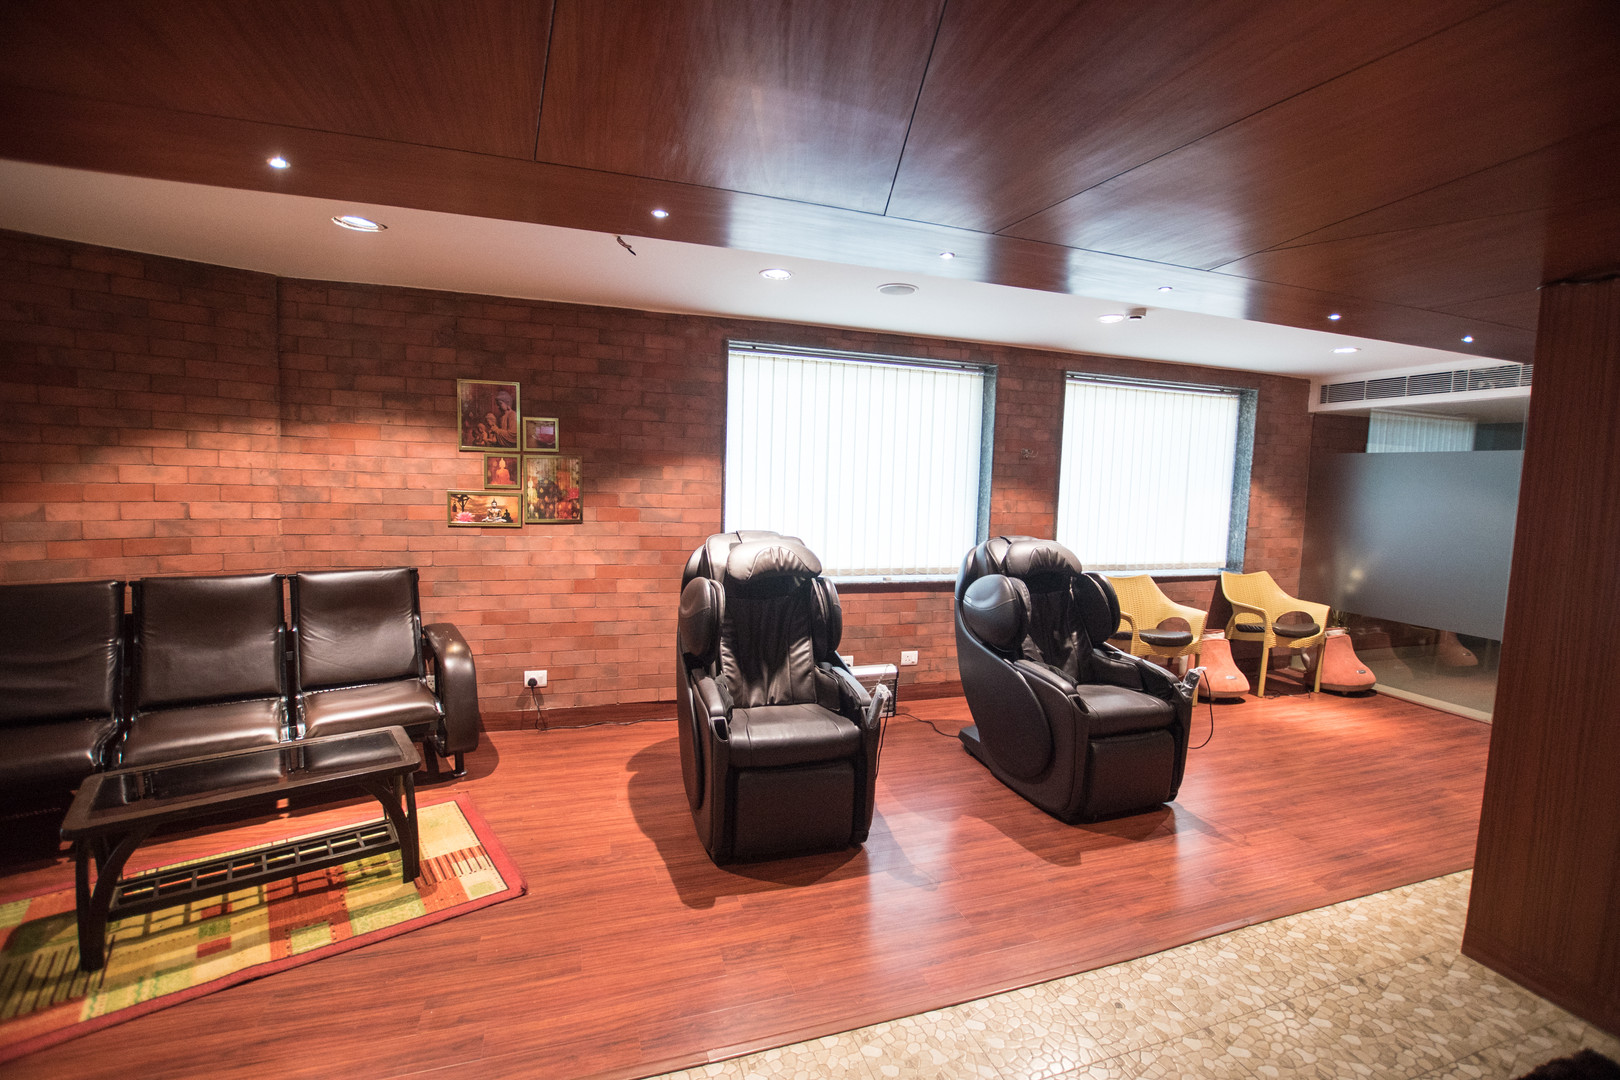 Relaxation Area - Massage Chairs.jpg